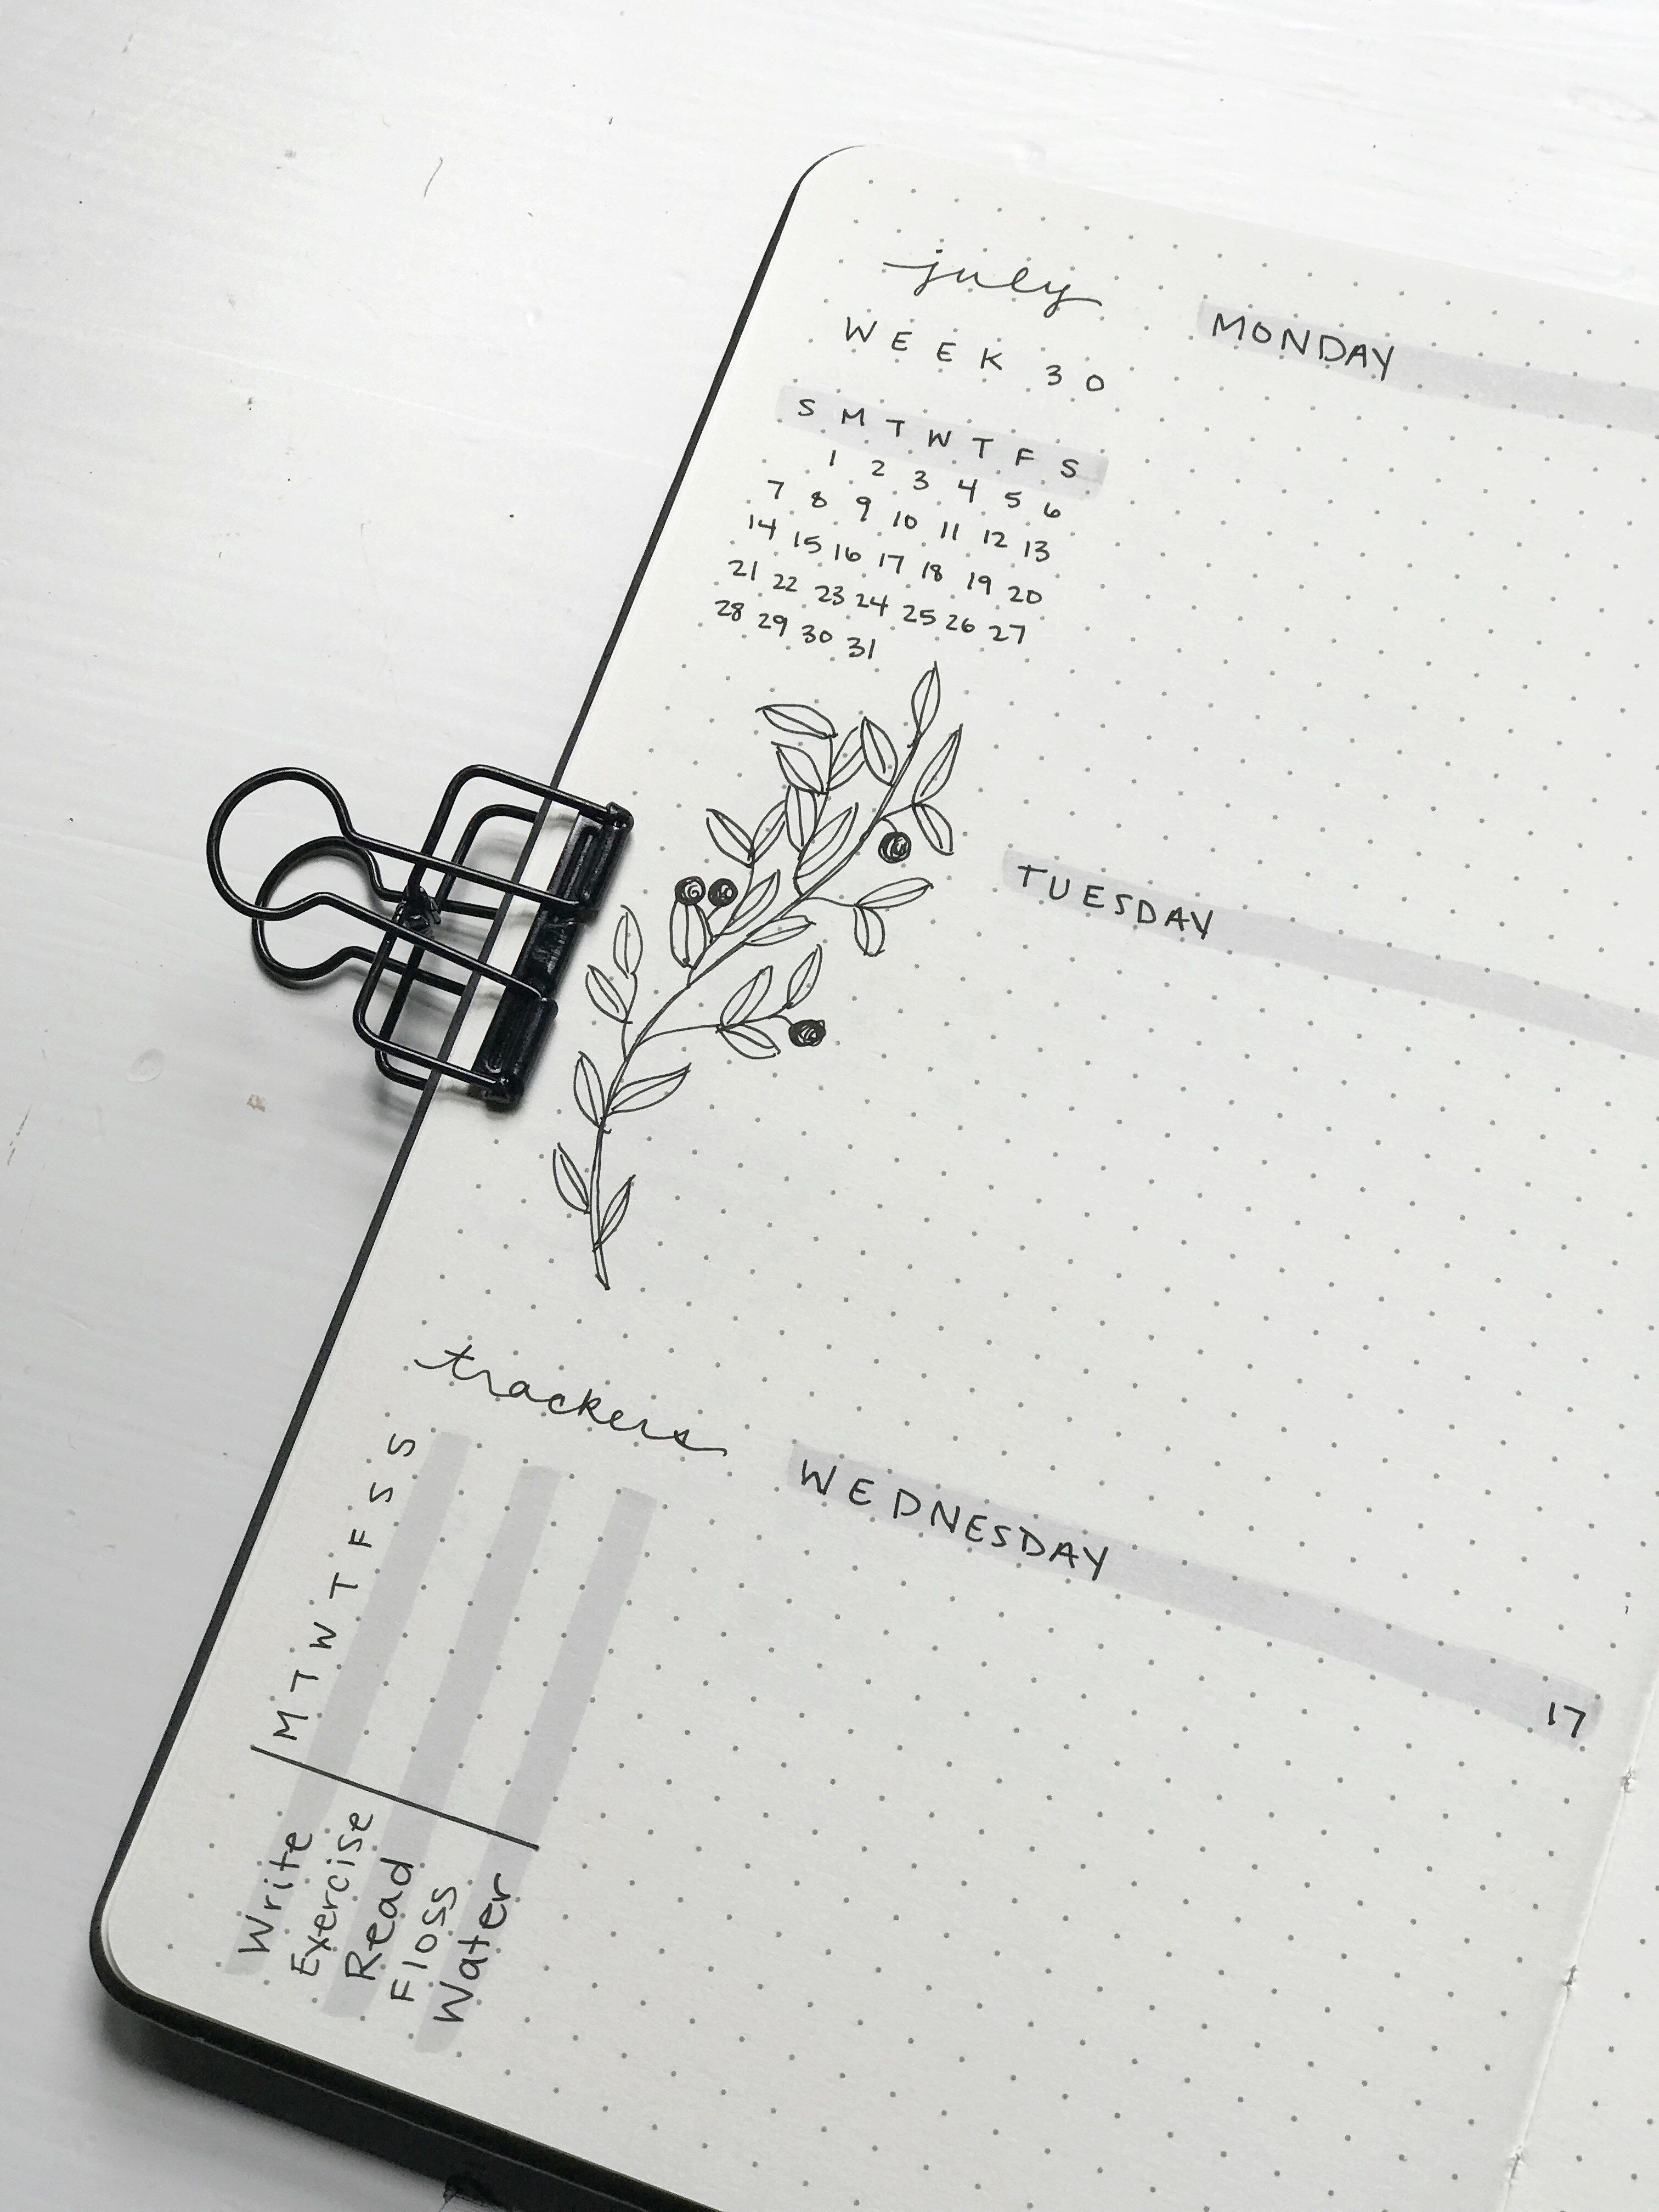 Minimalist bullet journal weekly spread up close and habit trackers page and design berries doodles bujo inspiration and spreads journaling ideas aesthetic flowers simple art brush pen ink drawings branches and berries gray and white and black monochromatic color scheme #bulletjournalideas